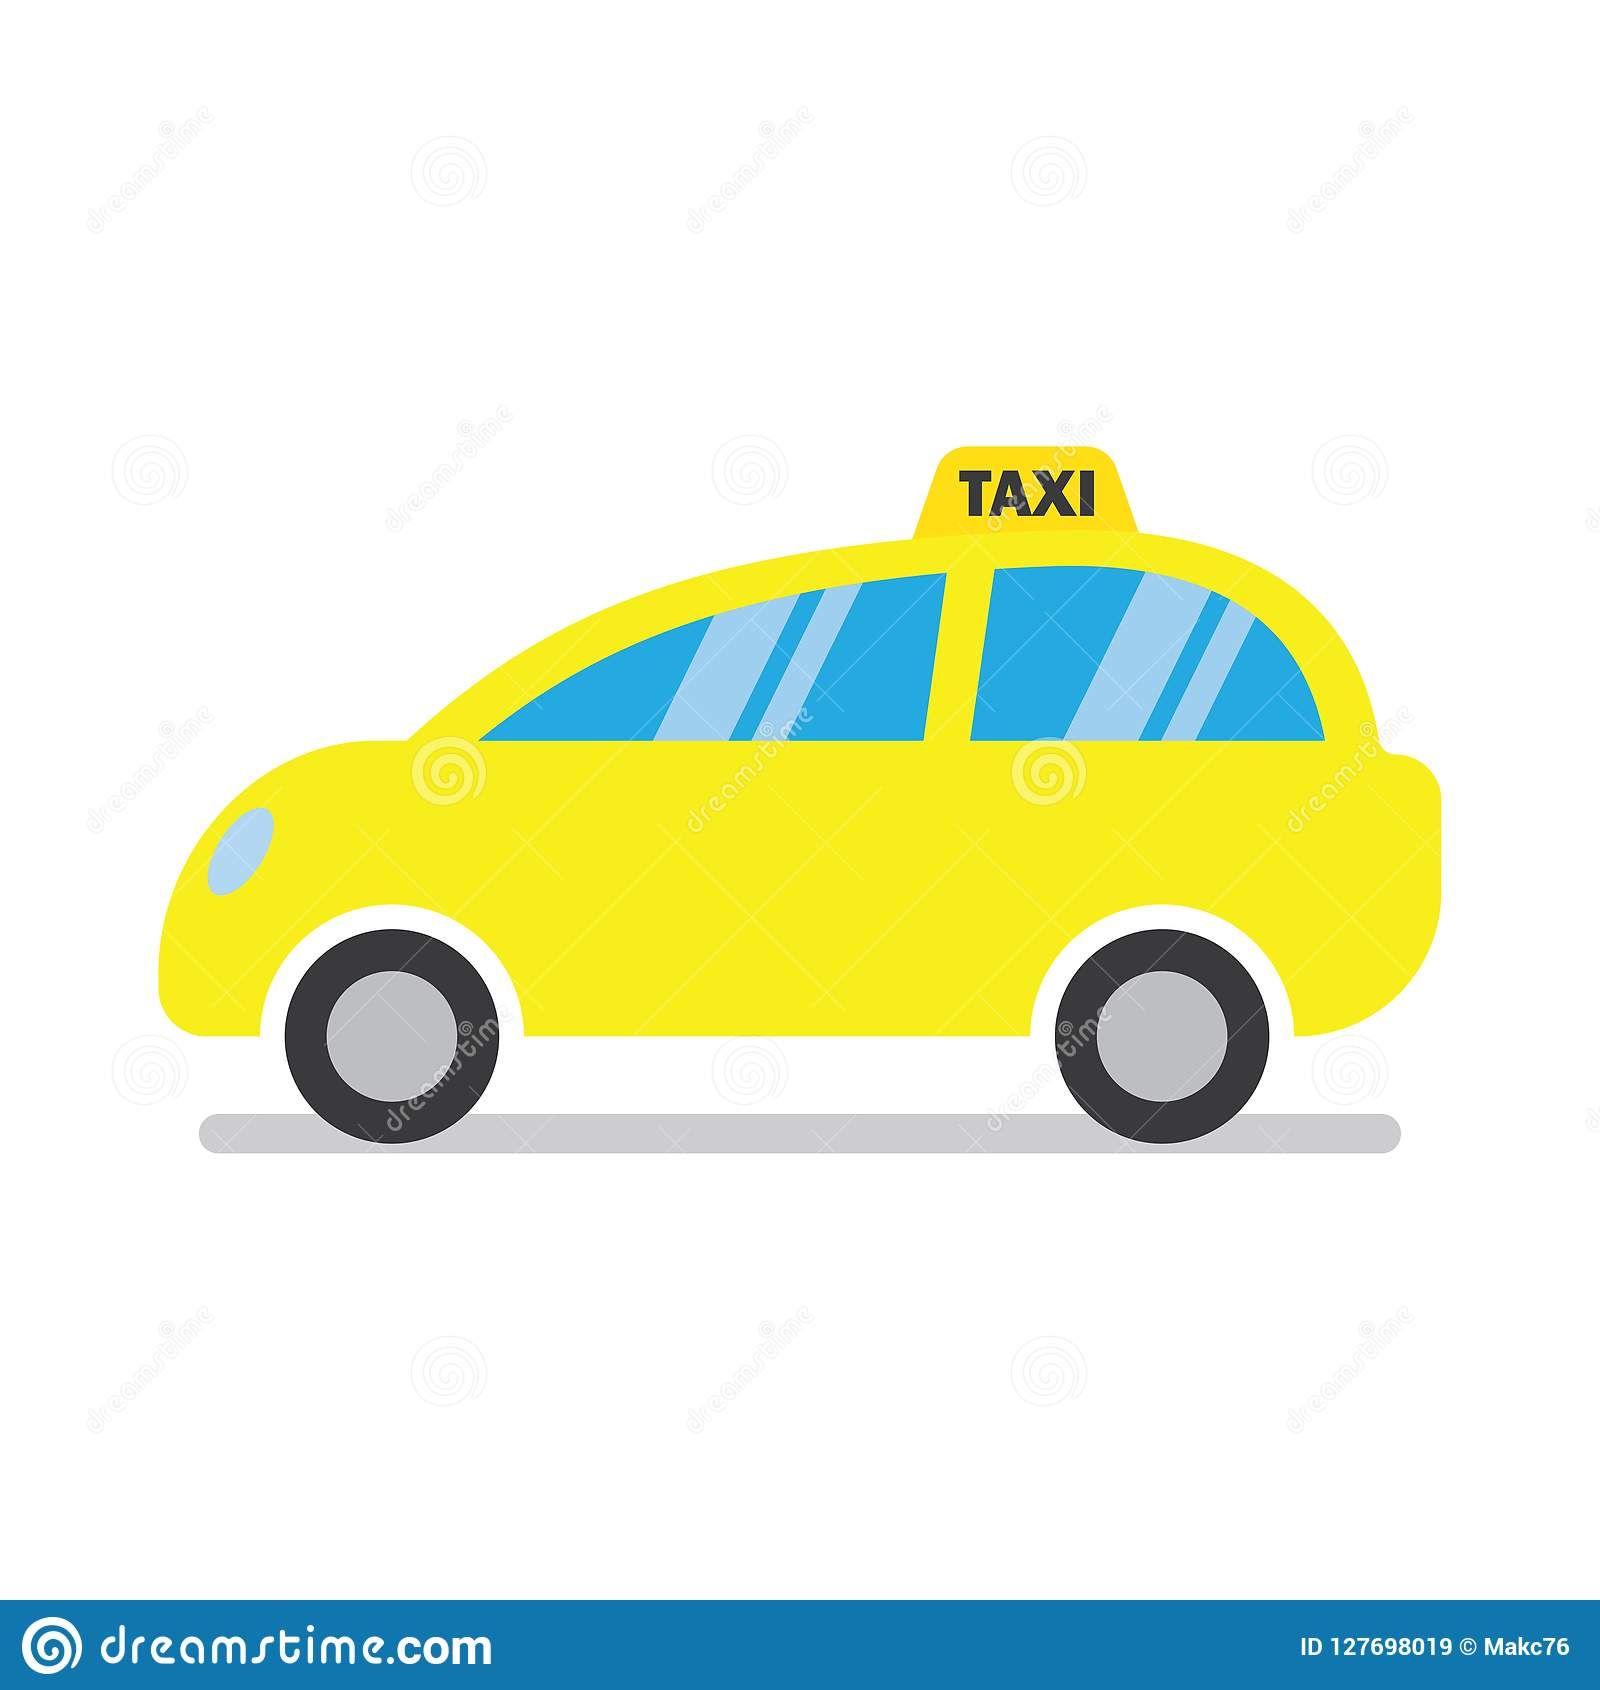 Yellow taxi cab icon stock vector  Illustration of symbol